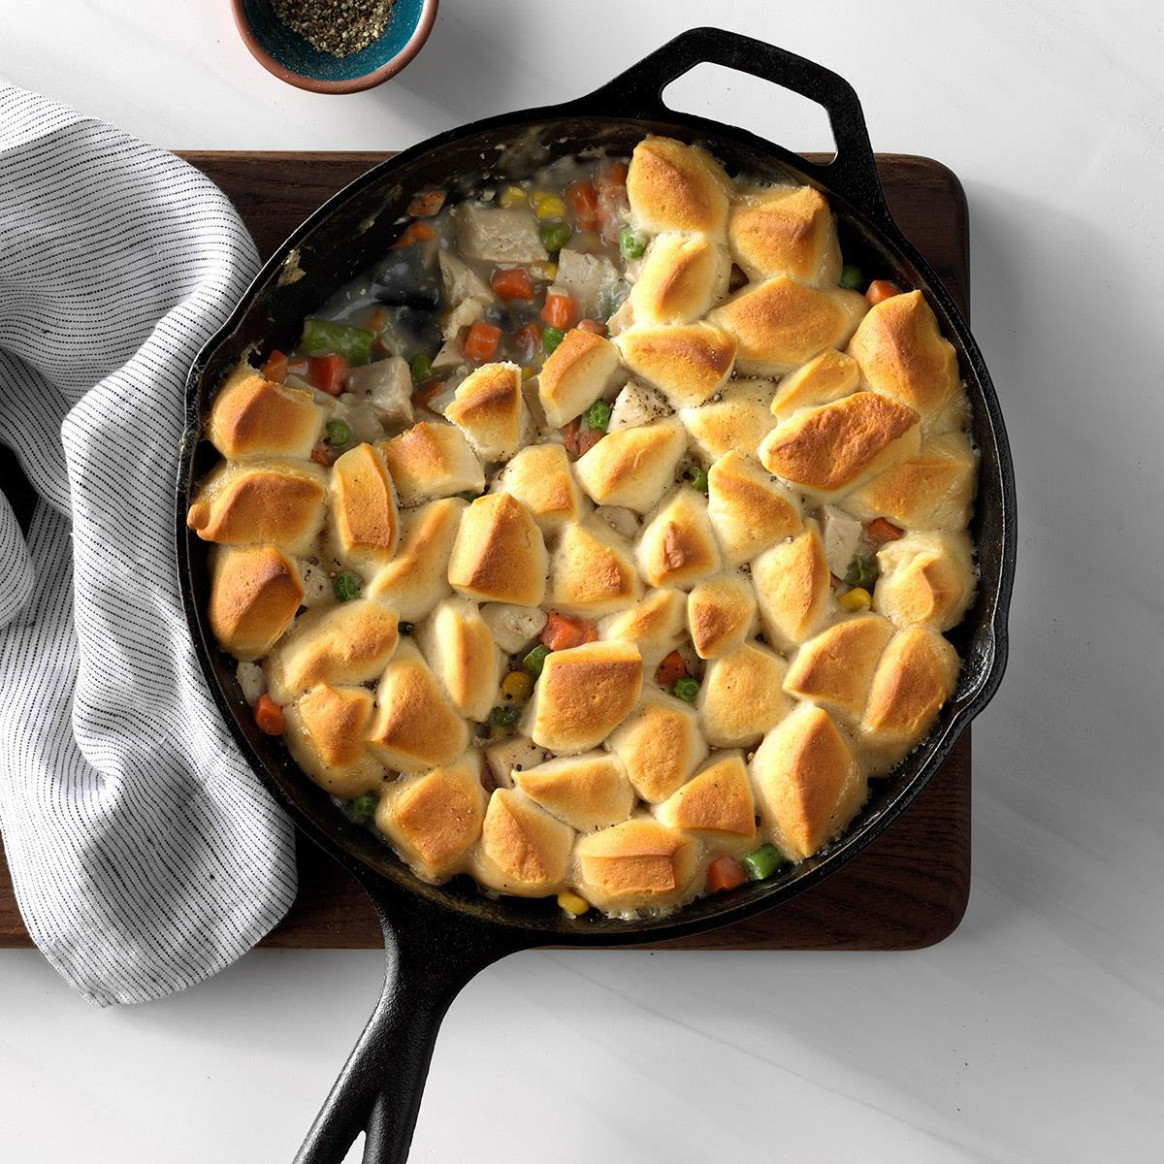 14 Easy Recipes to Make When You Need Comfort Food Quick ...